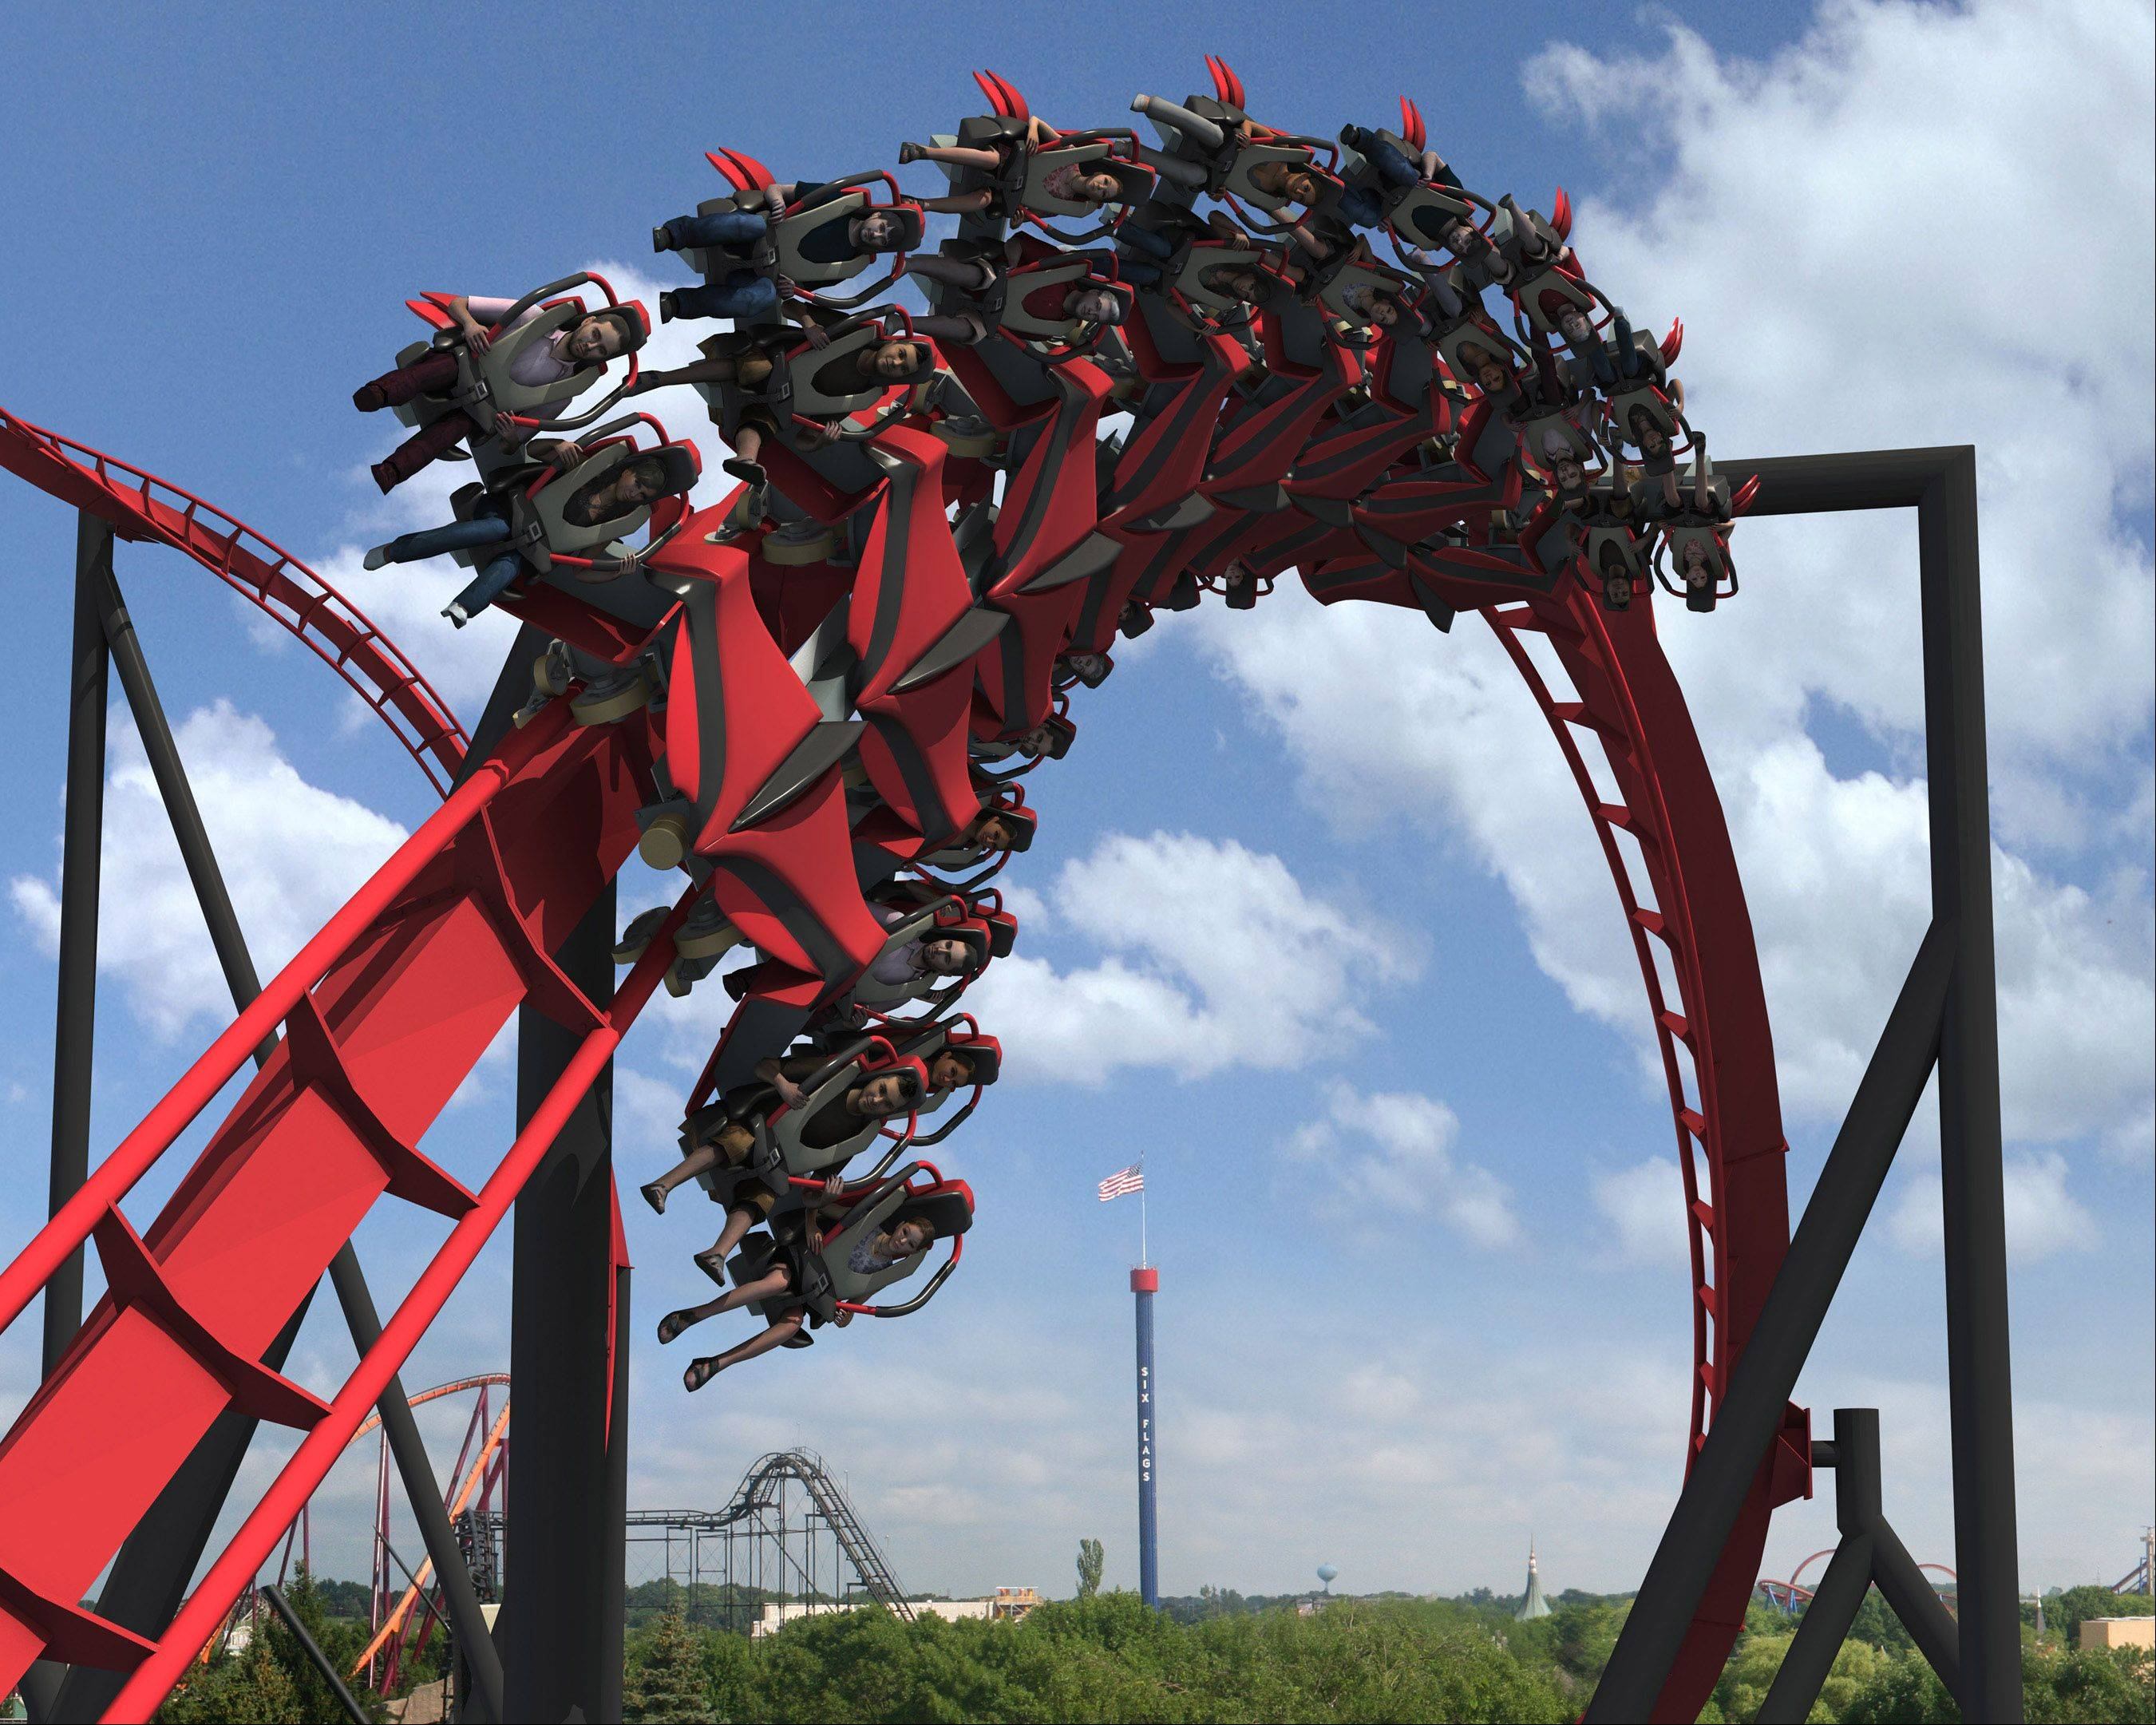 Six Flags Great America in Gurnee will debut state-of-the-art roller coaster X-Flight this season. Gurnee officials cite the coaster in projecting more amusement tax revenue in the tentative 2012-13 budget.